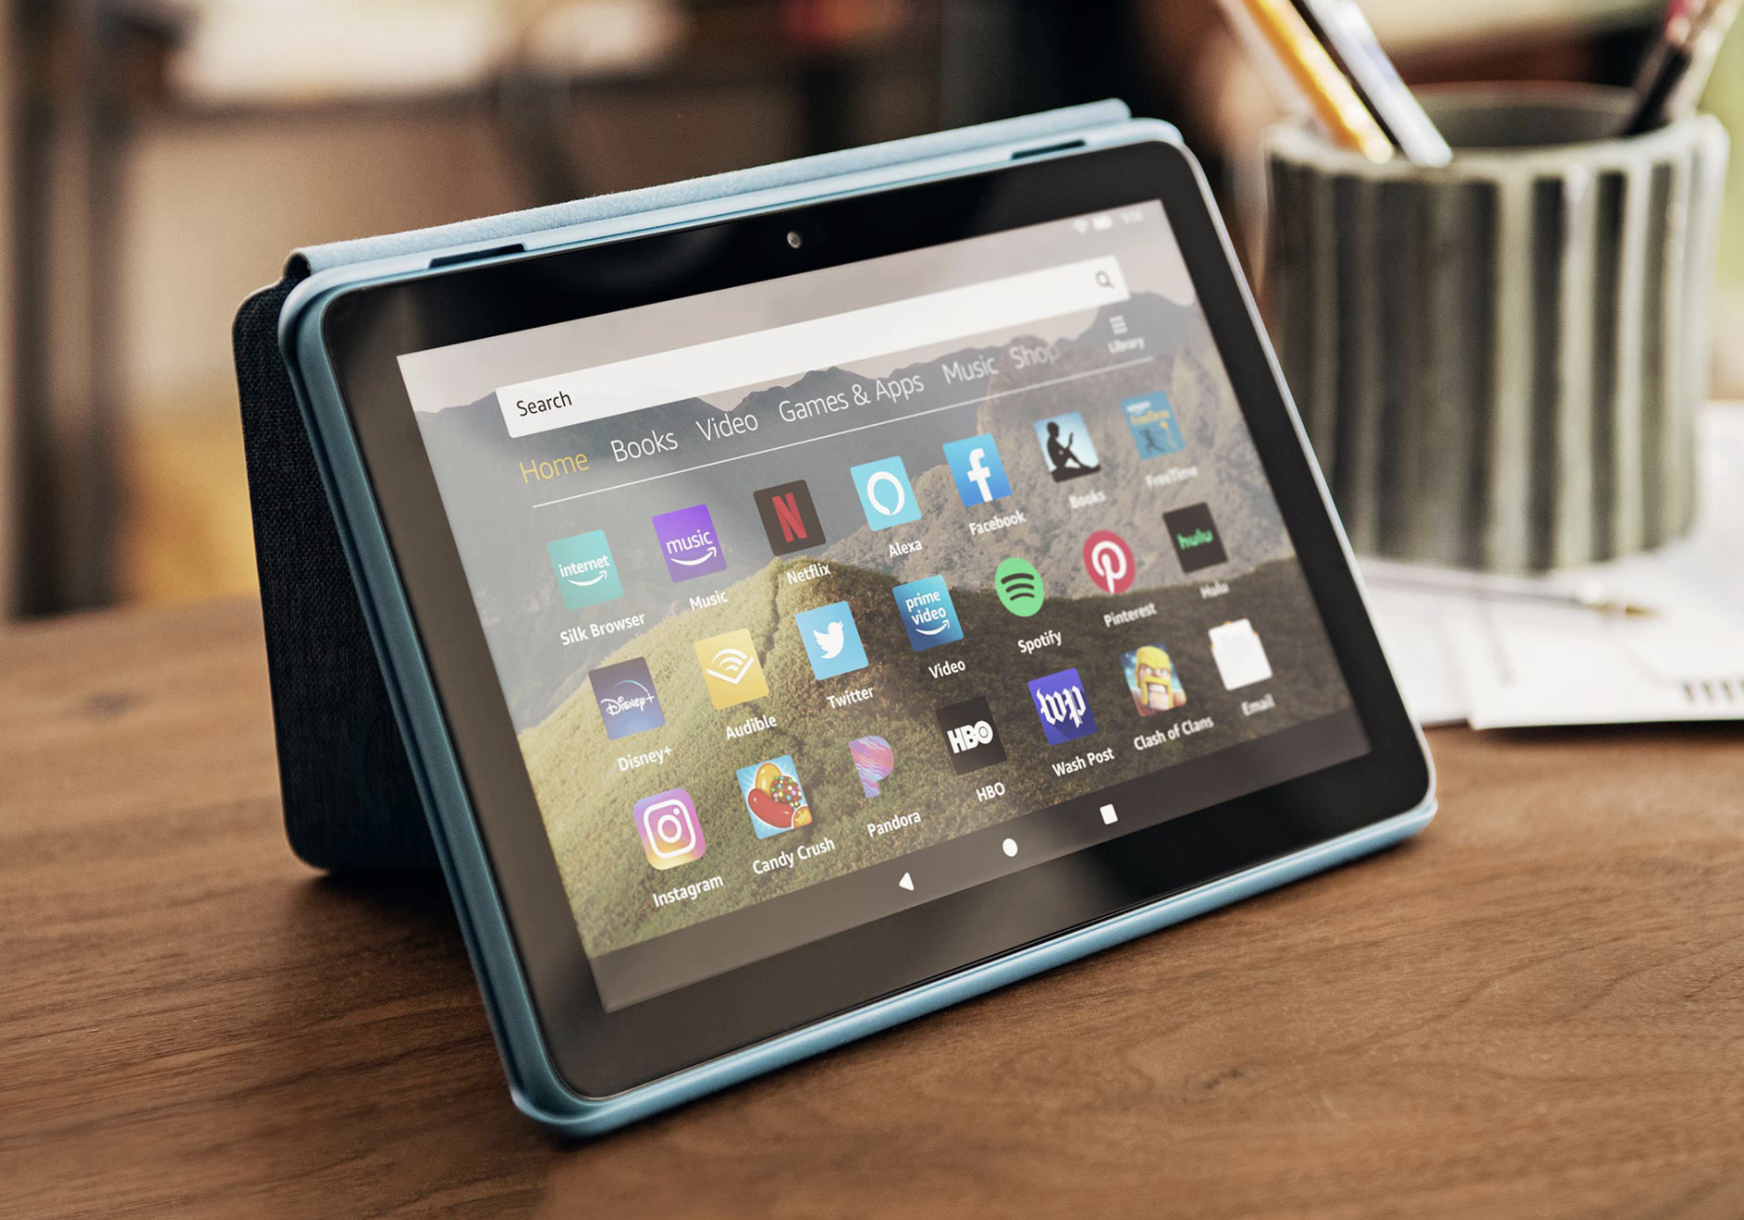 Amazon Fire HD 8 Tablet propped up case